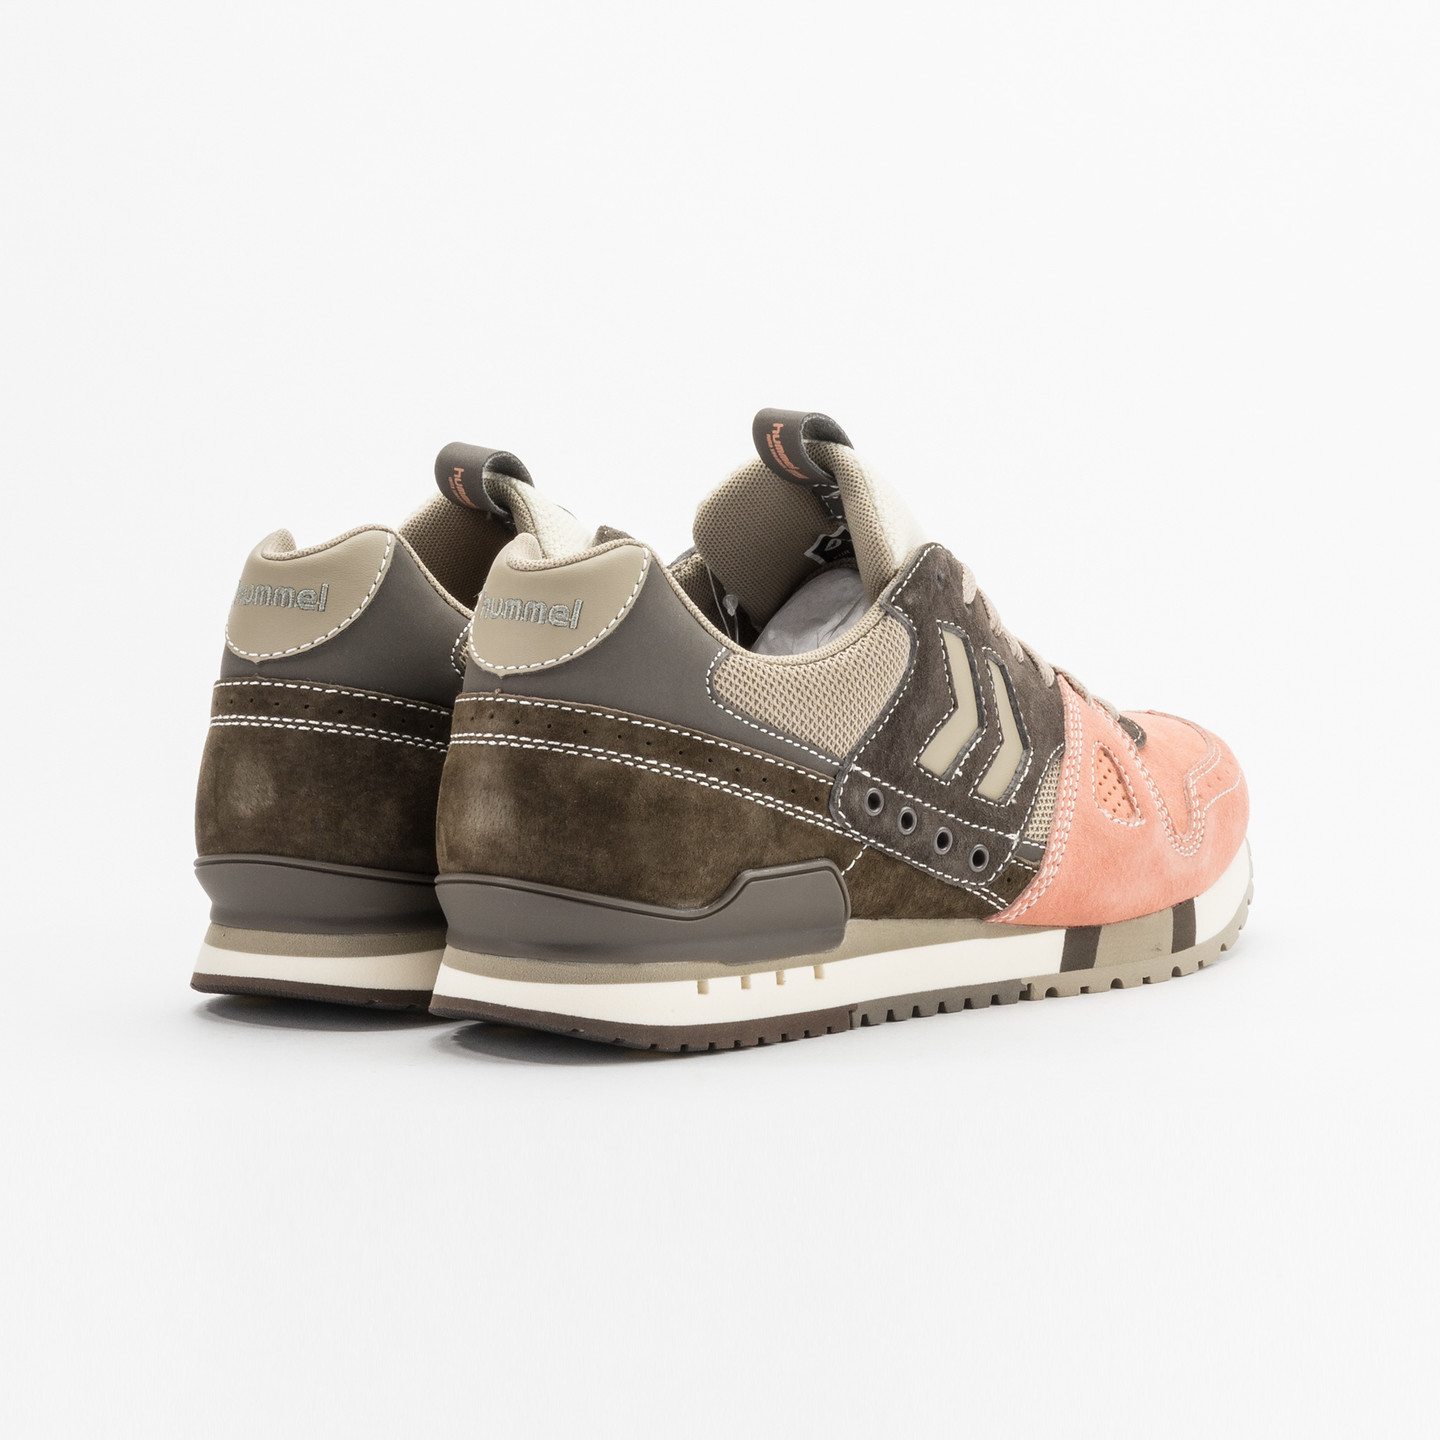 Hummel Marathona OG Mita 'Danish Salmon' Chinchilla / Salmon 63603-1515-37